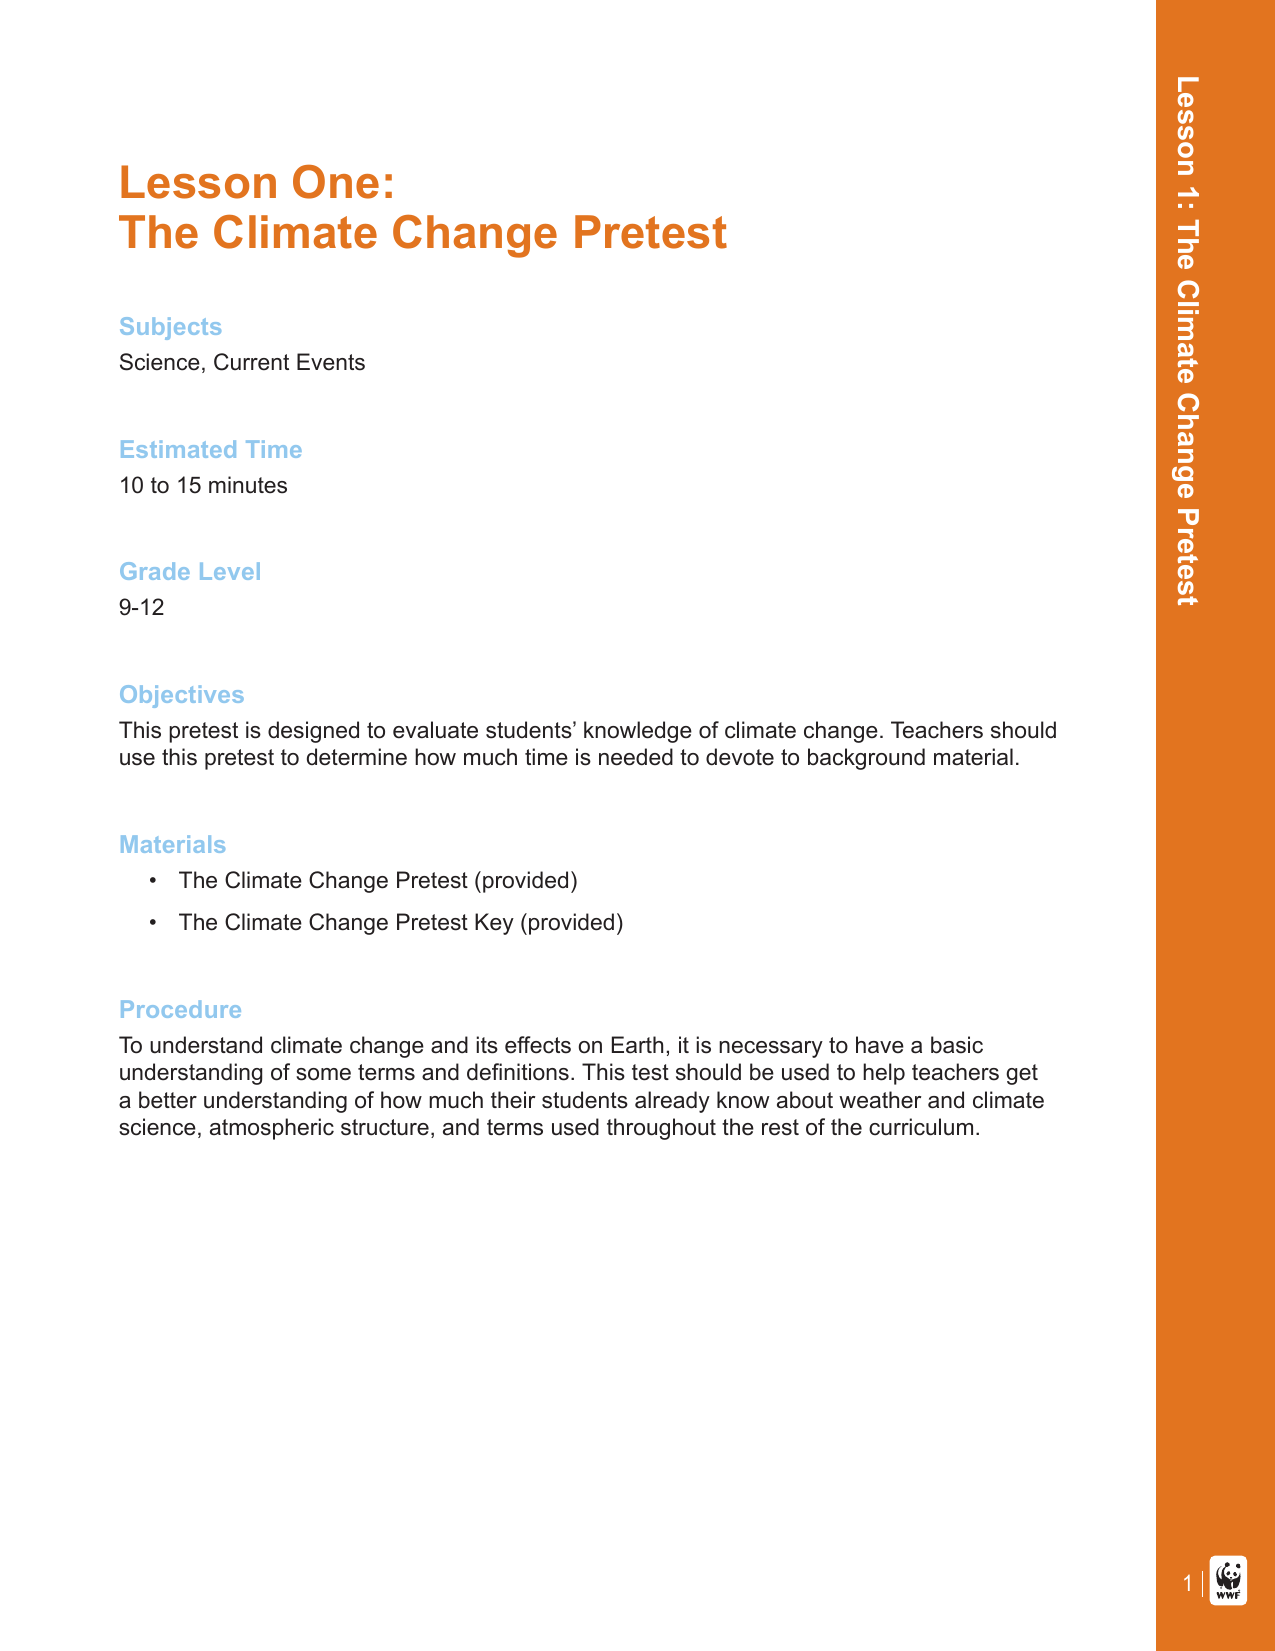 Lesson One: The Climate Change Pretest